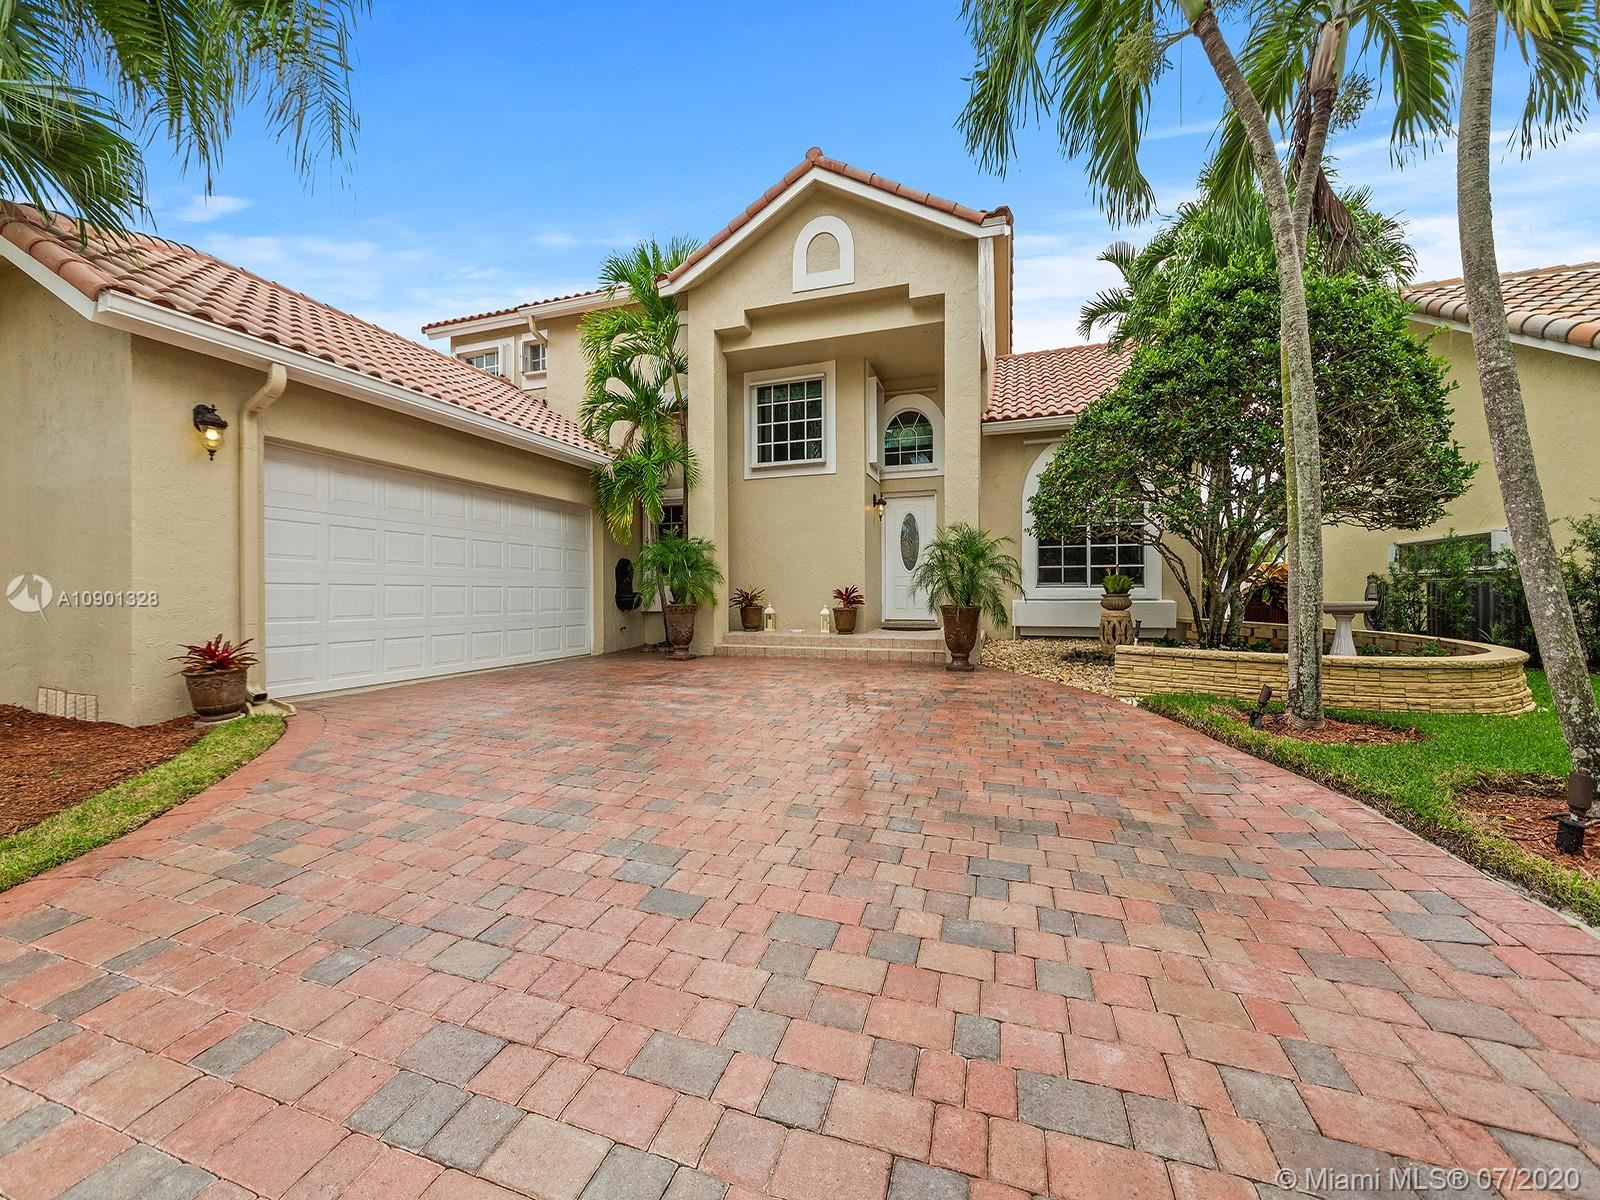 1088 Longview, Weston, FL 33326 - #: A10901328